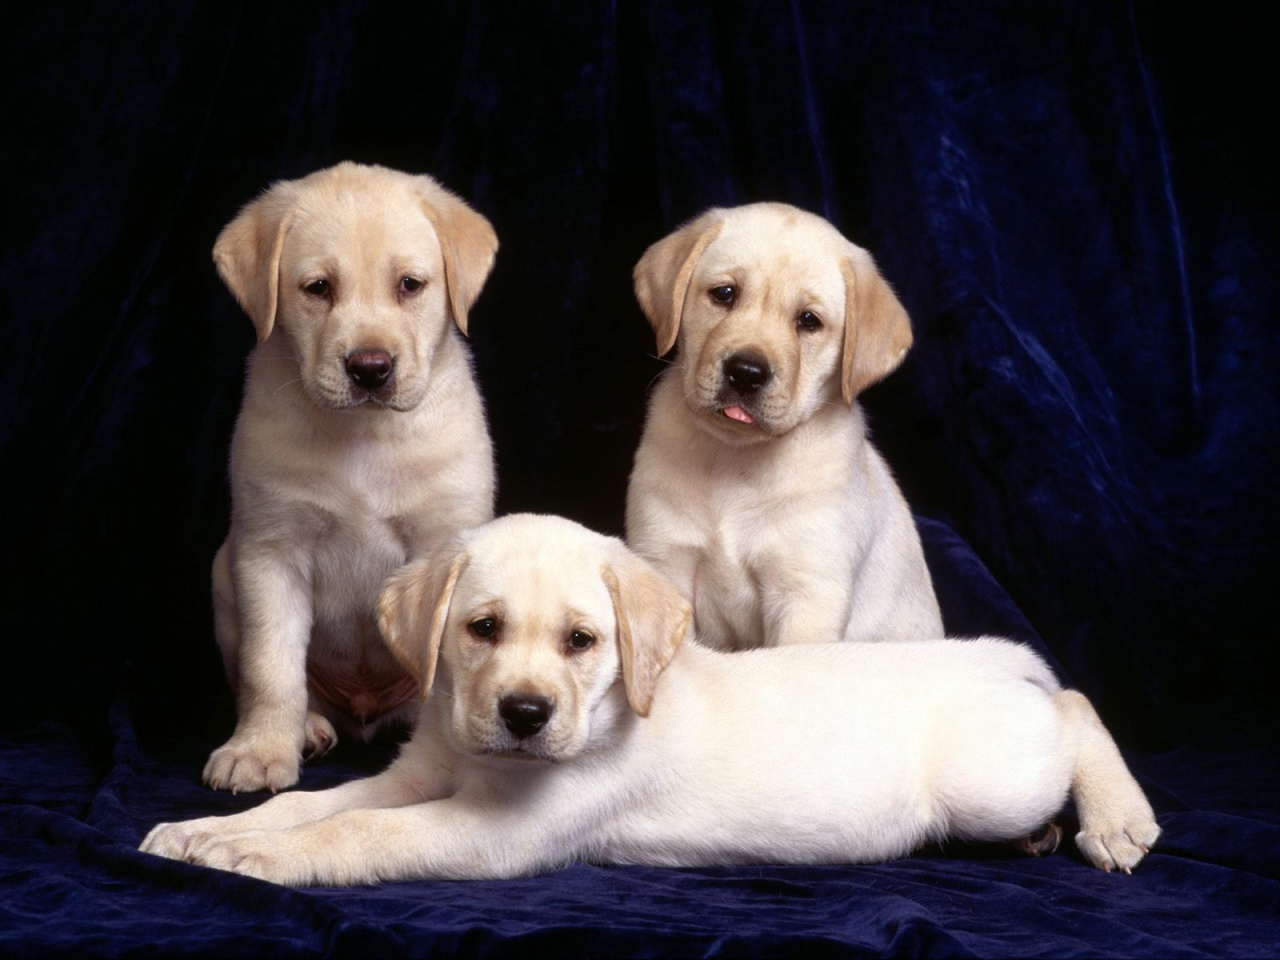 Labrador Puppies Review and Pictures 1280x960